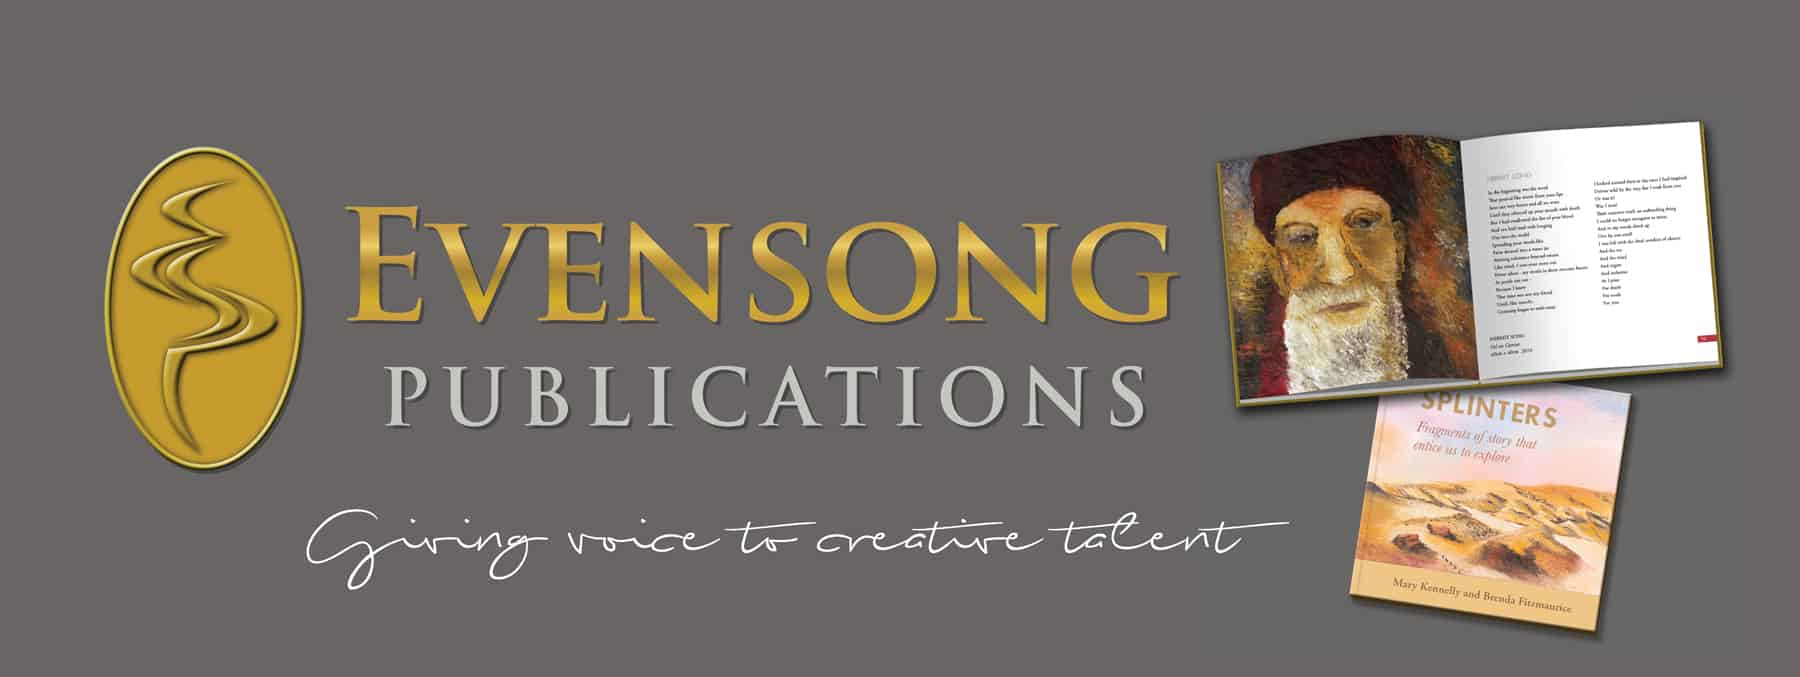 evensong-publications